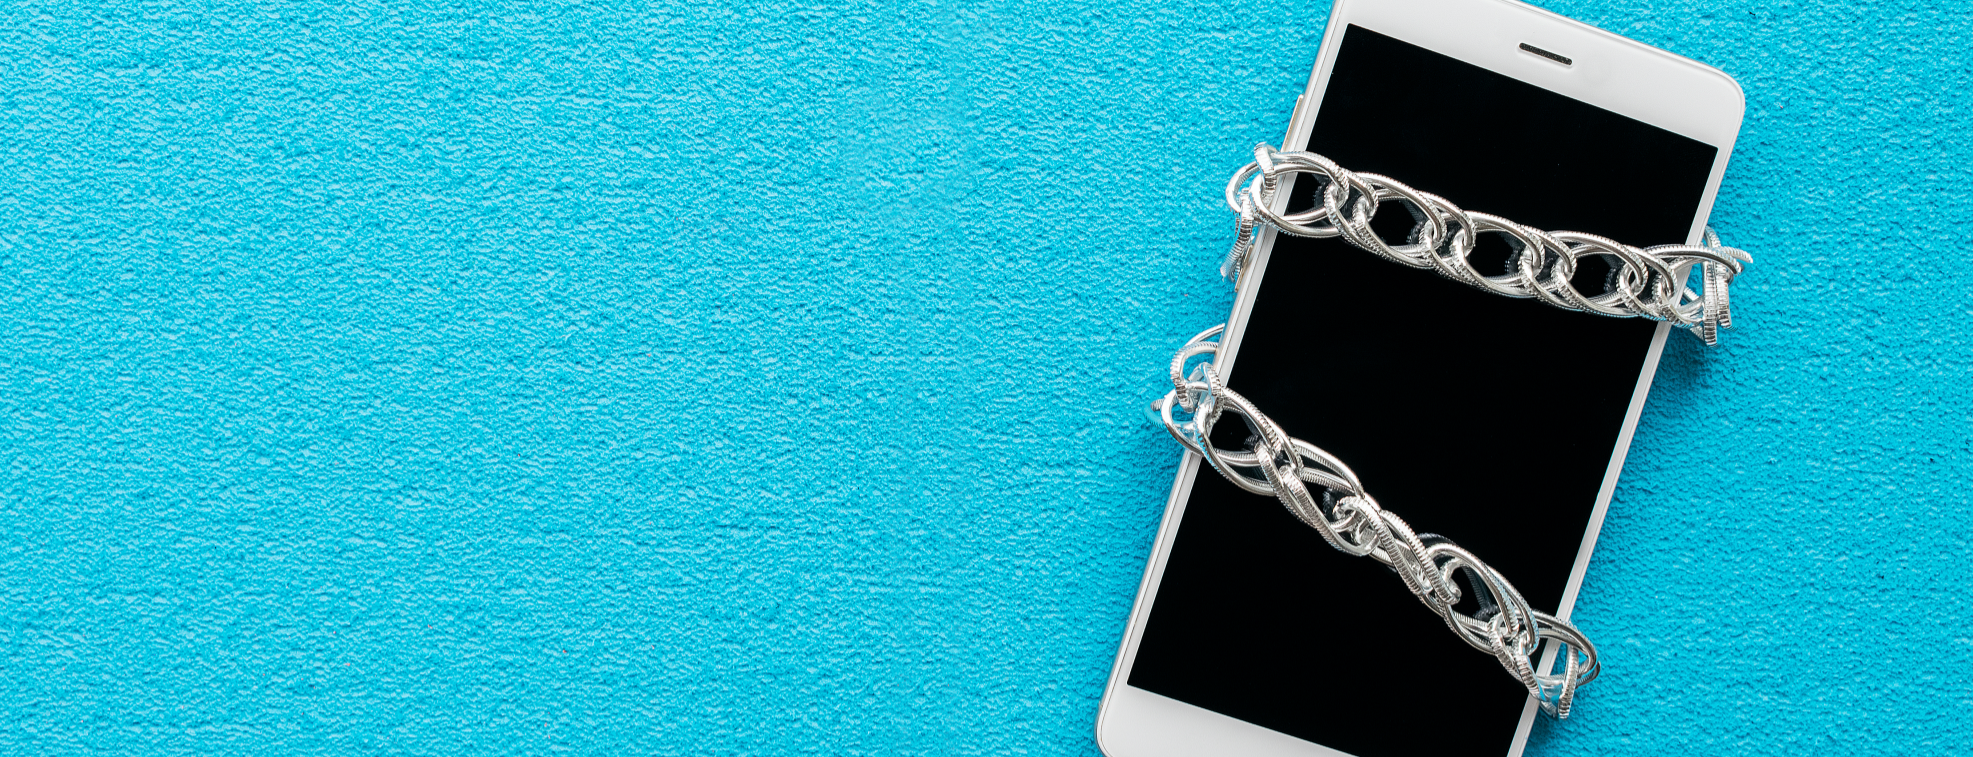 A phone trapped in chain to avoid using it as a distraction